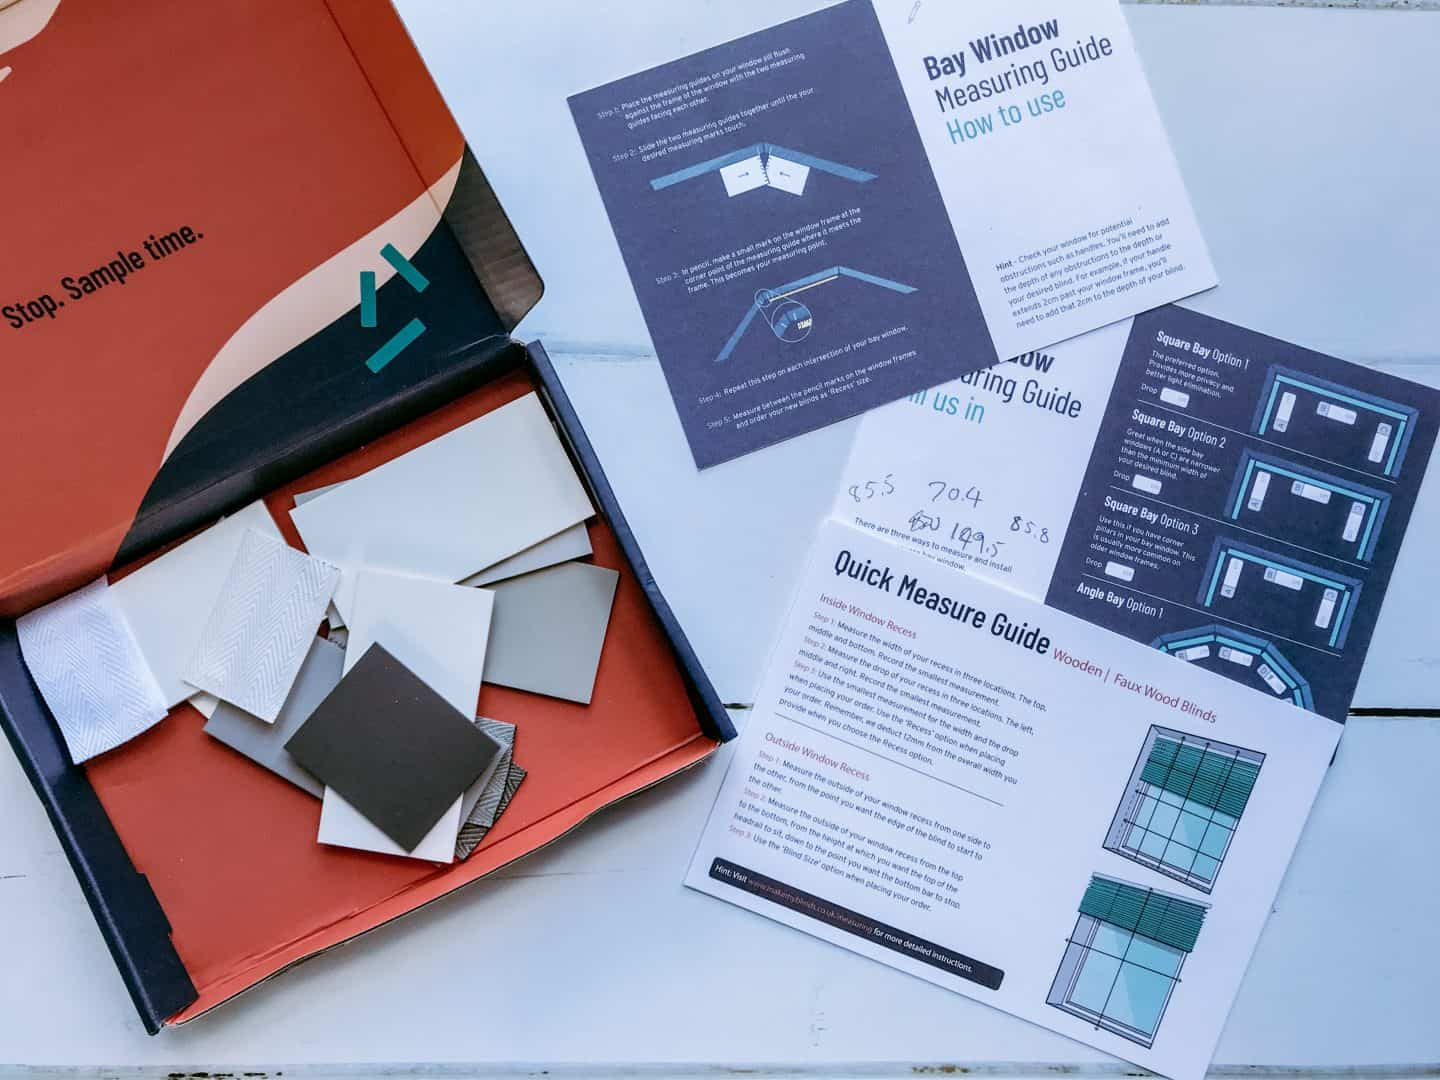 Samples and blind measuring guides from Make My Blinds